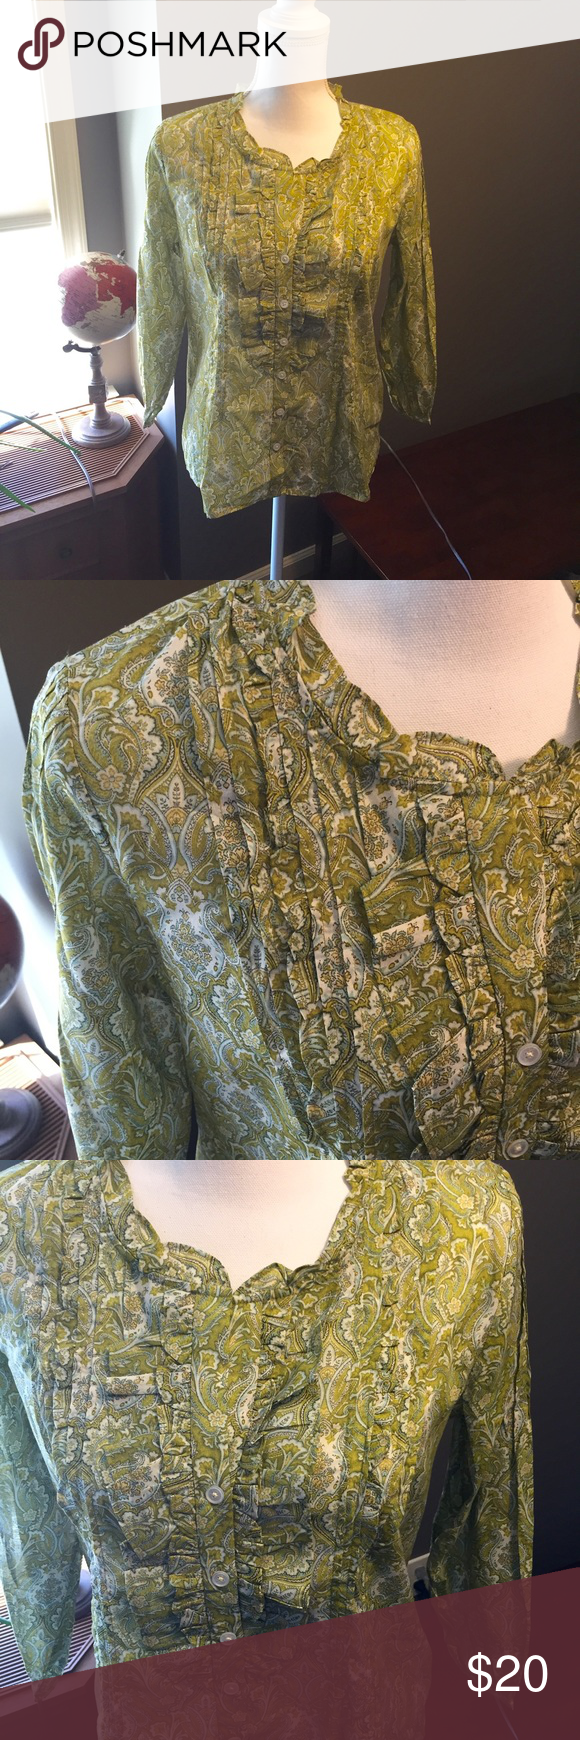 Talbots Green Paisley Ruffled Button Down Shirt 6 Excellent condition! Thank you for looking! Talbots Tops Button Down Shirts